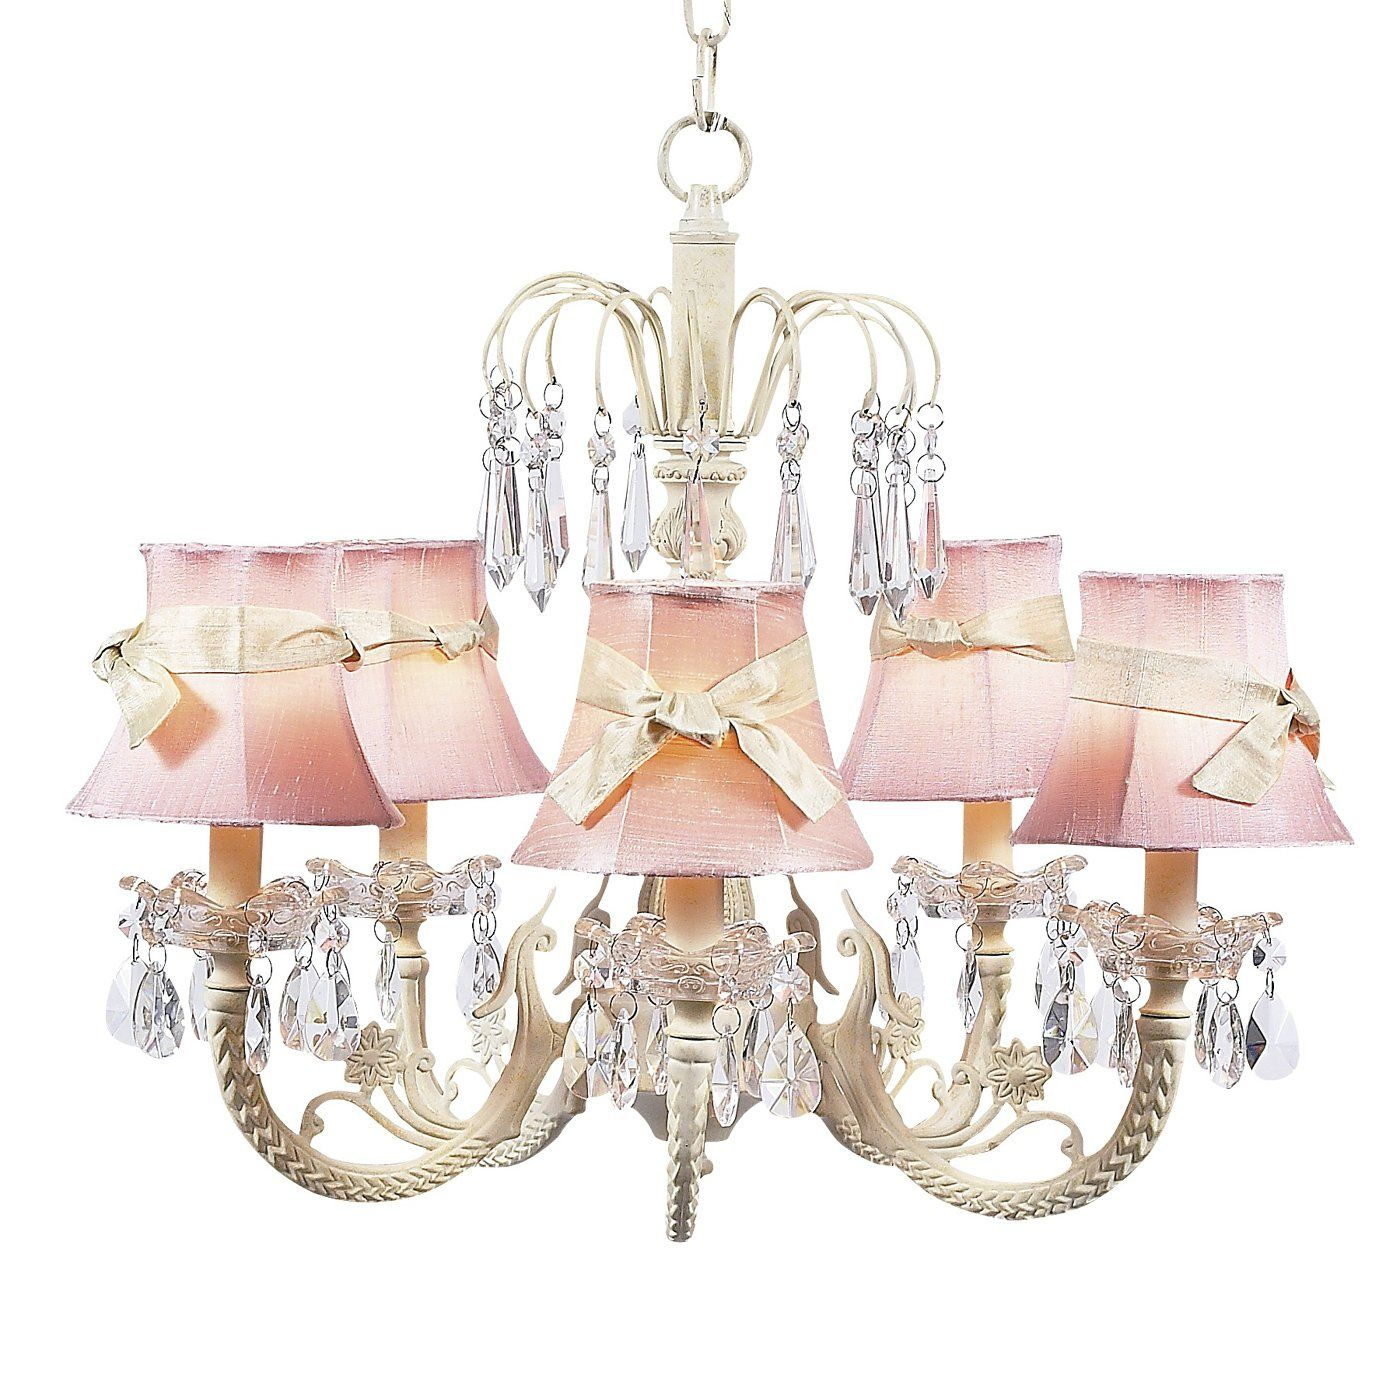 Jubilee 704 5 light water fall chandelier atg stores light jubilee 704 5 light water fall chandelier atg stores arubaitofo Images